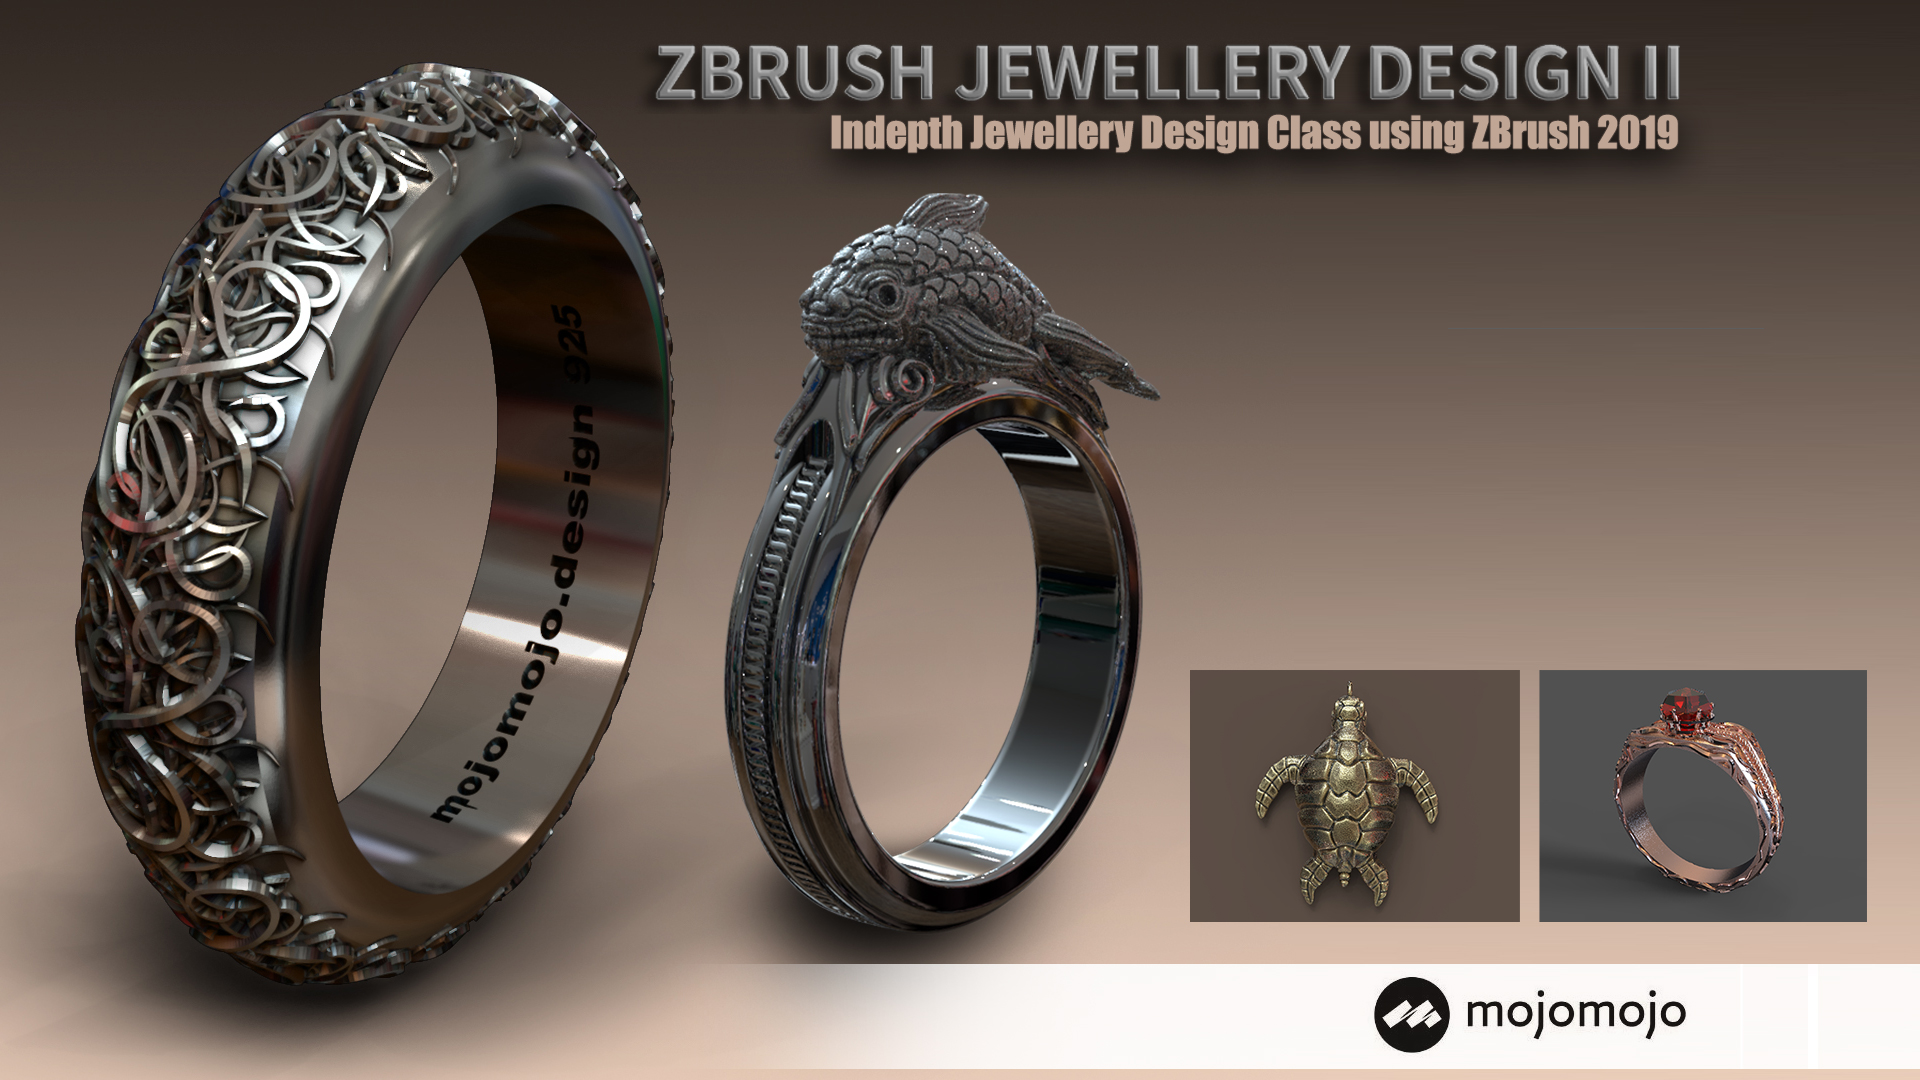 Jewellery Design with ZBrush - Creating Custom Jewellery